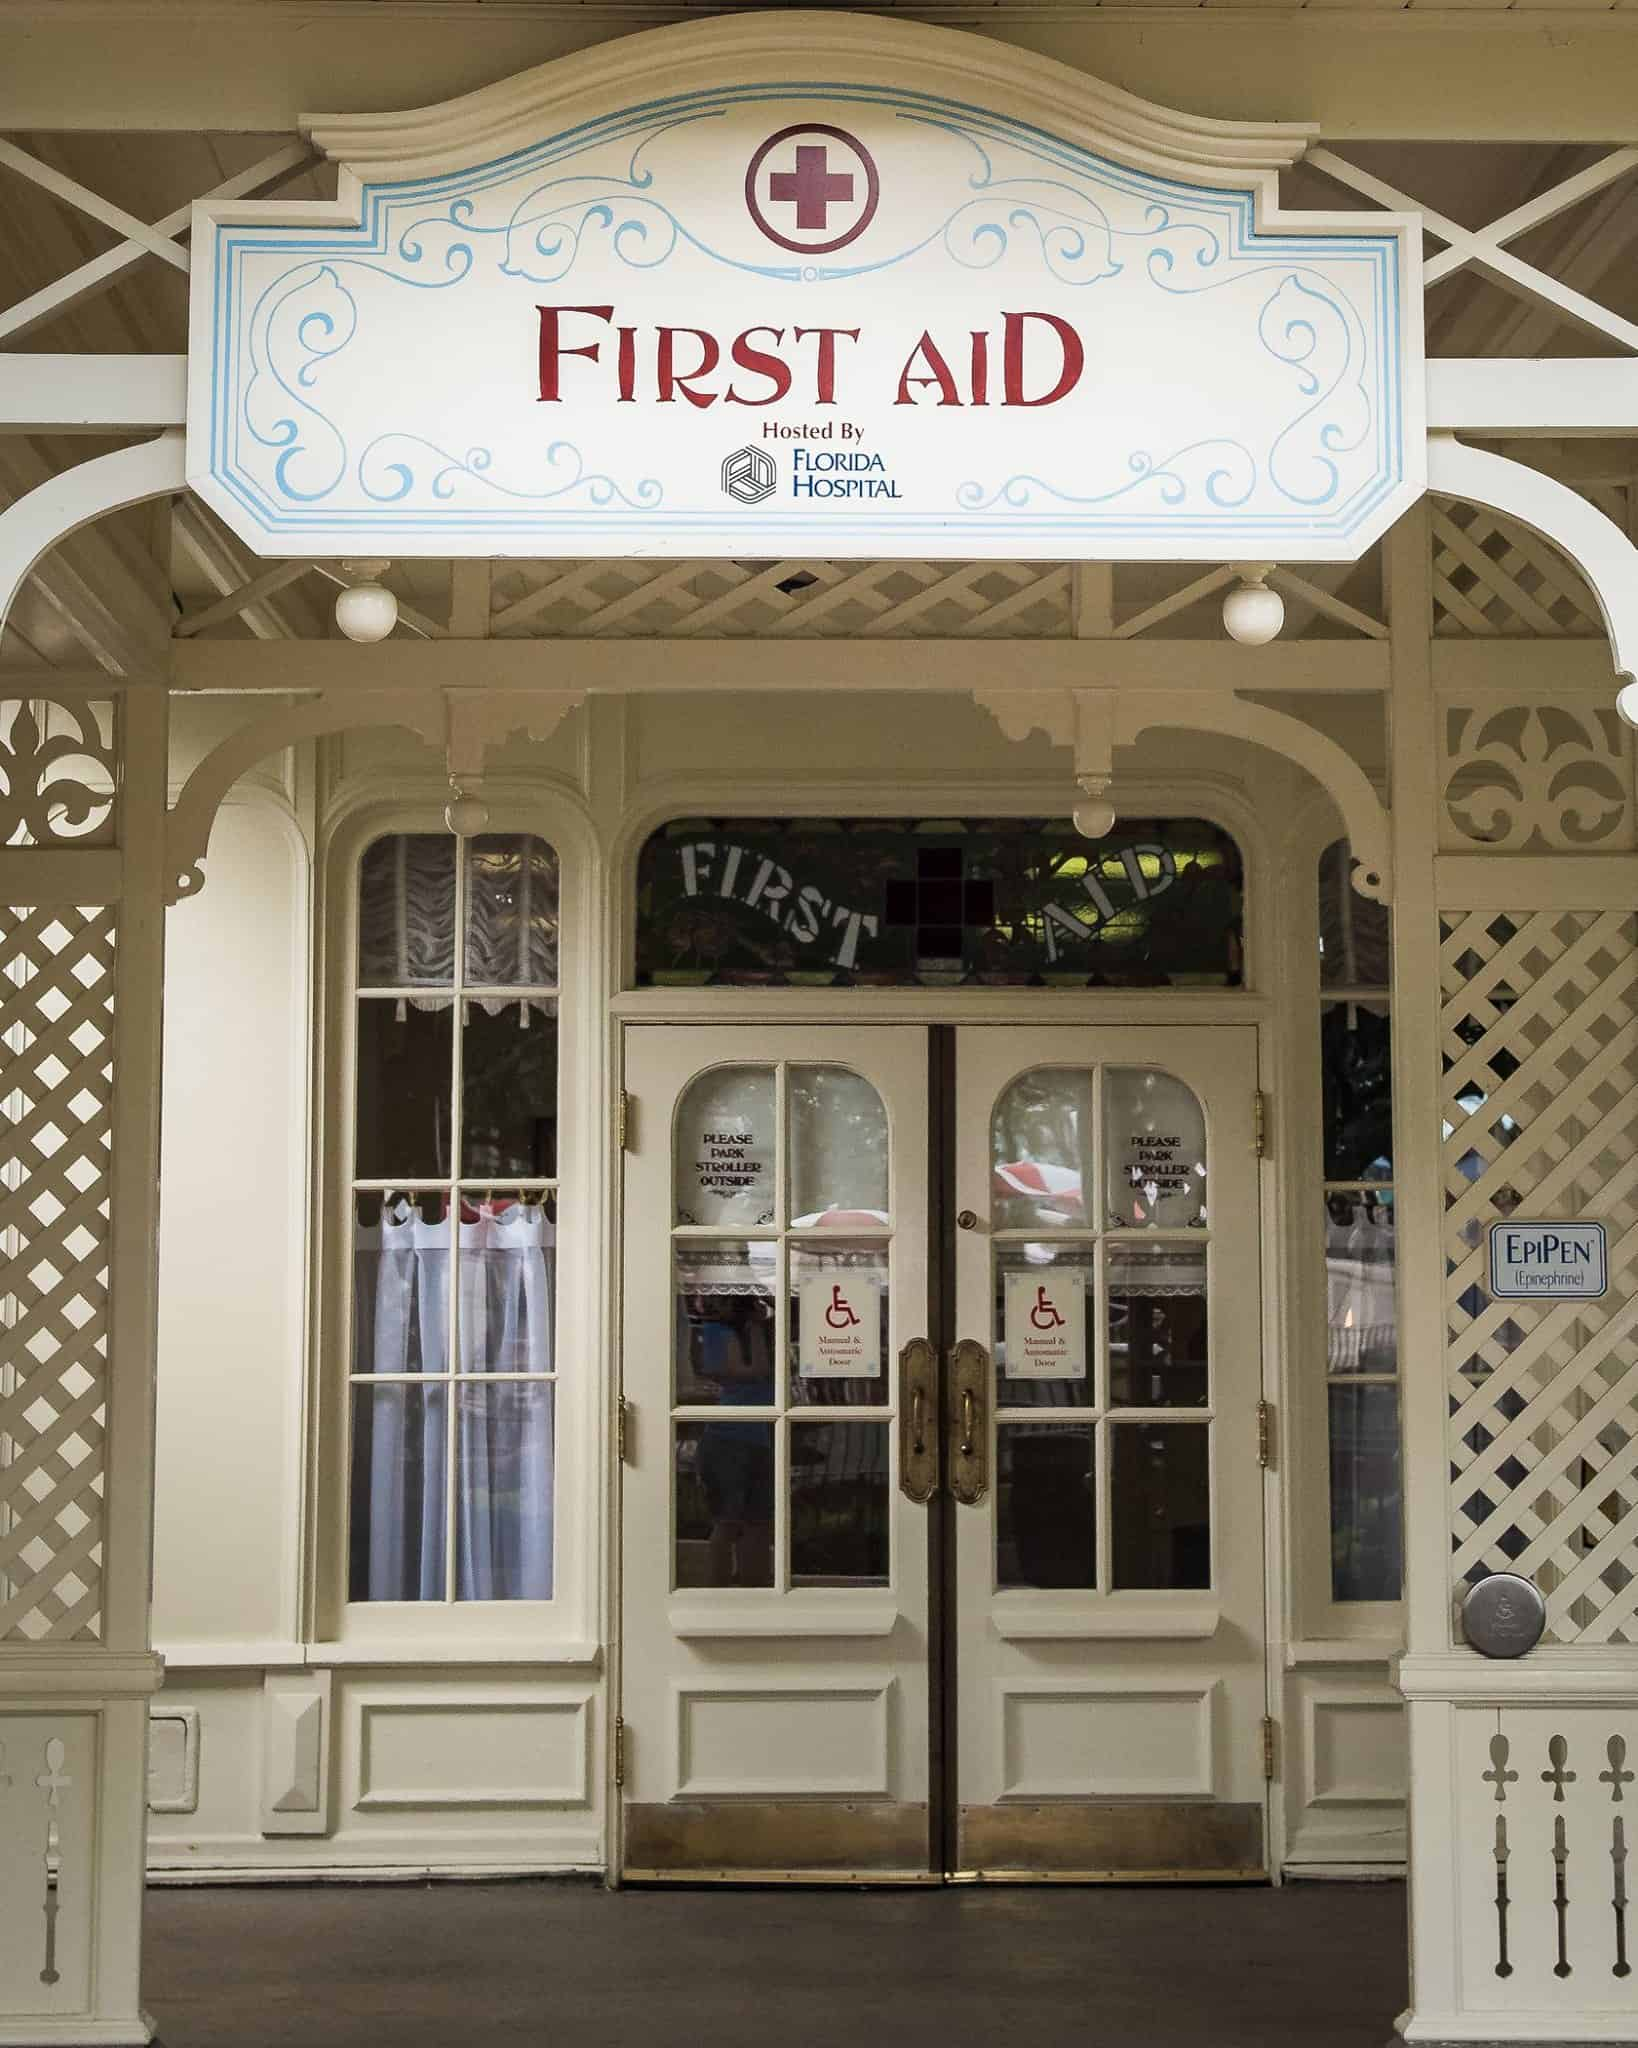 First aid center at Disney World